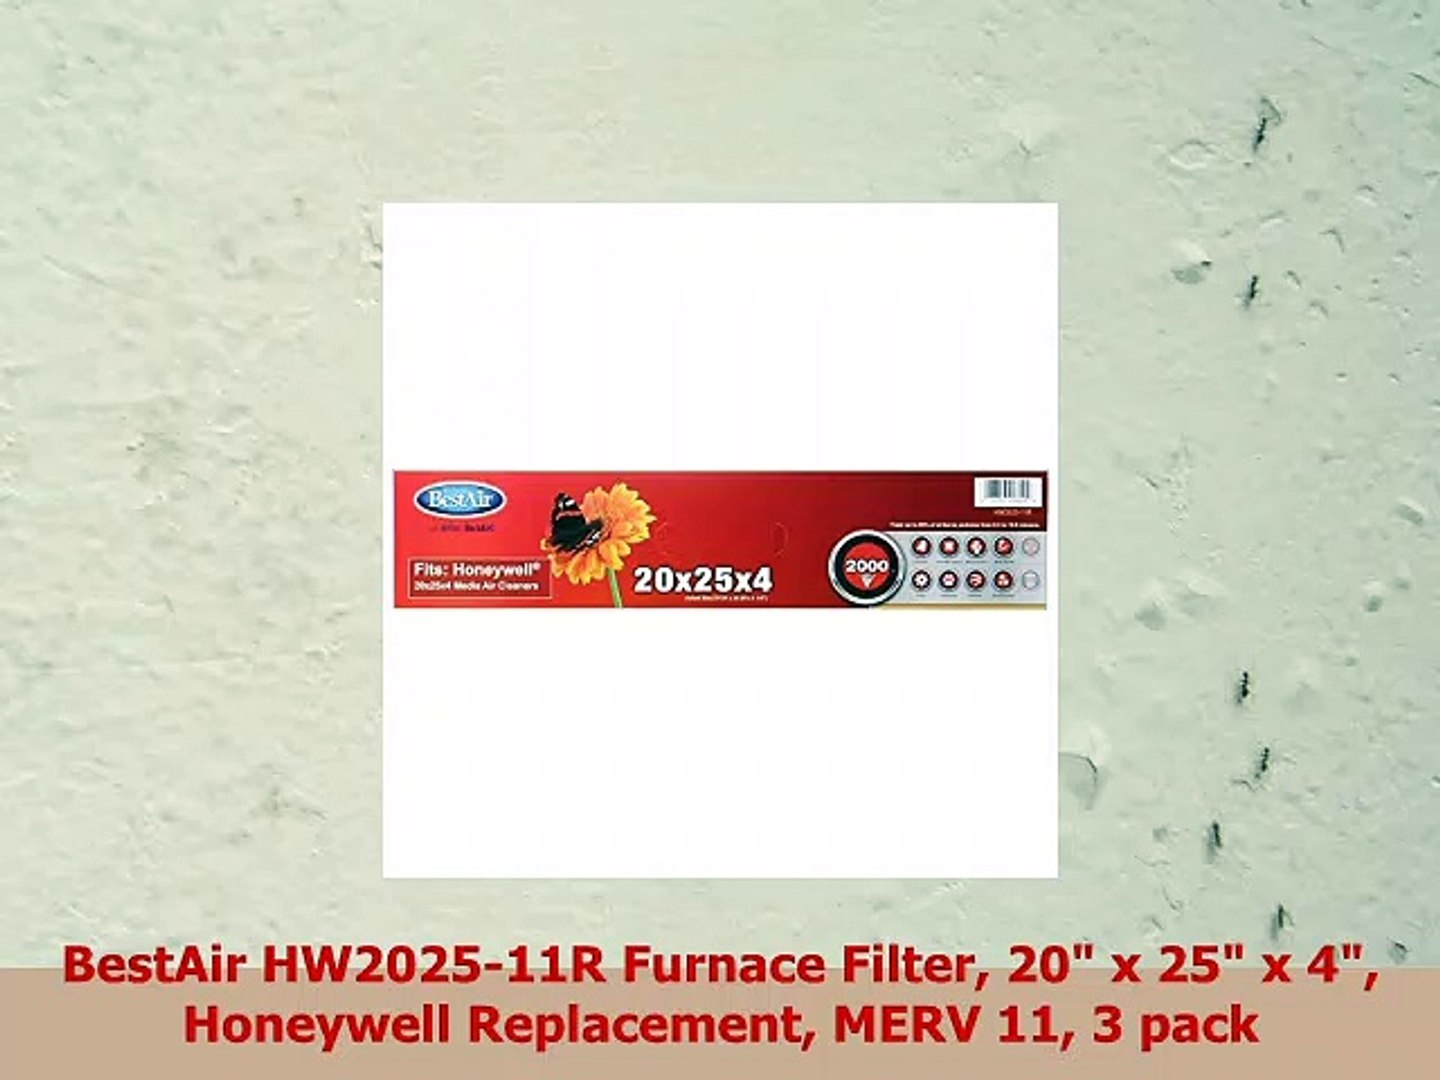 FilterBuy 23.5x23.5x1 MERV 11 Pleated AC Furnace Air Filter, 23.5x23.5x1 Gold Pack of 2 Filters